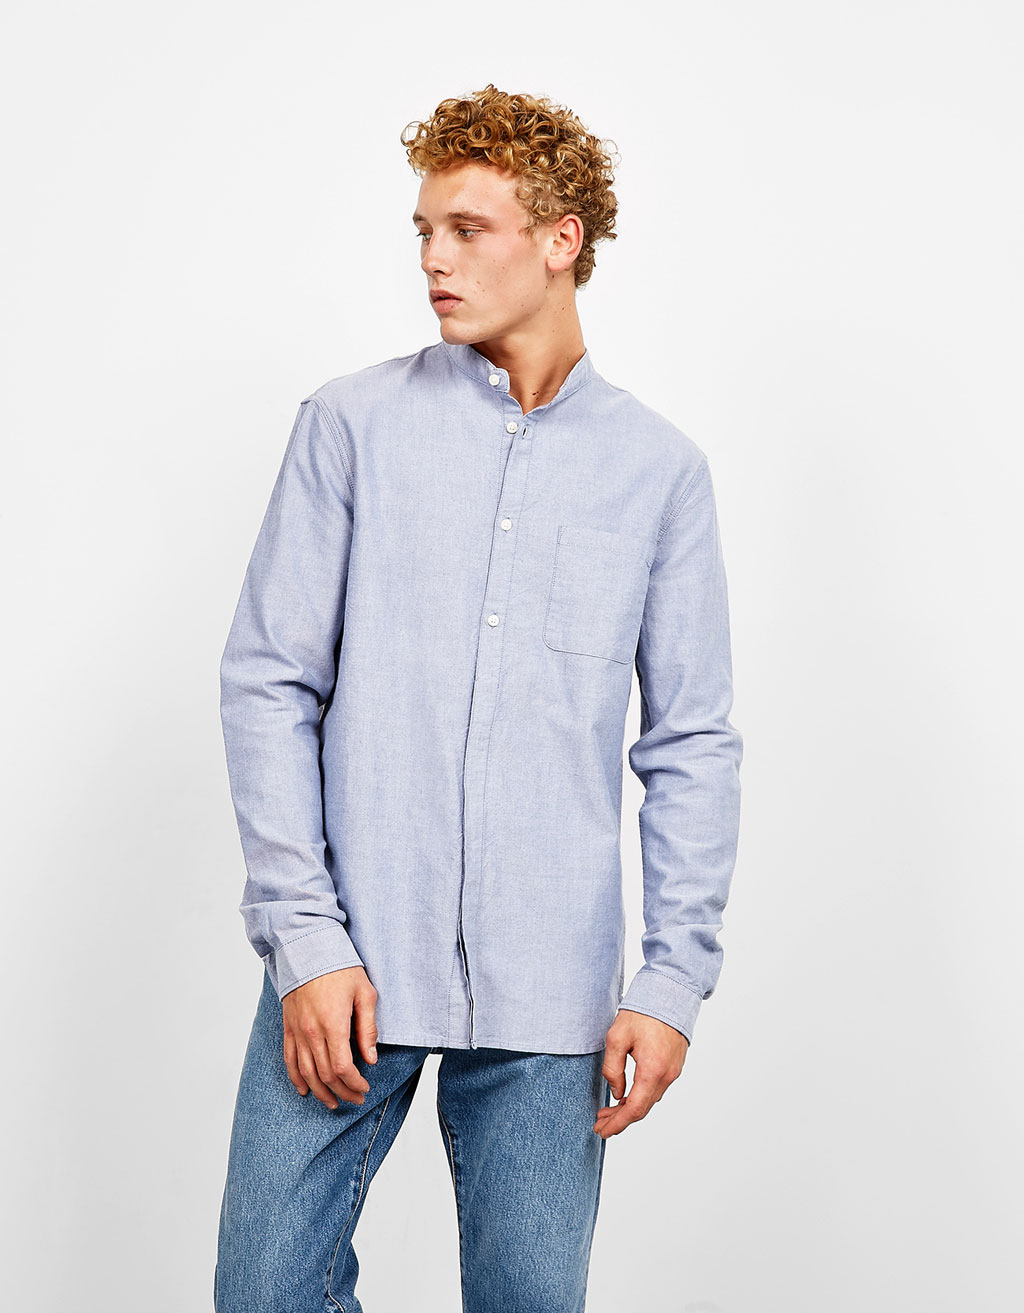 Mandarin collar Oxford shirt